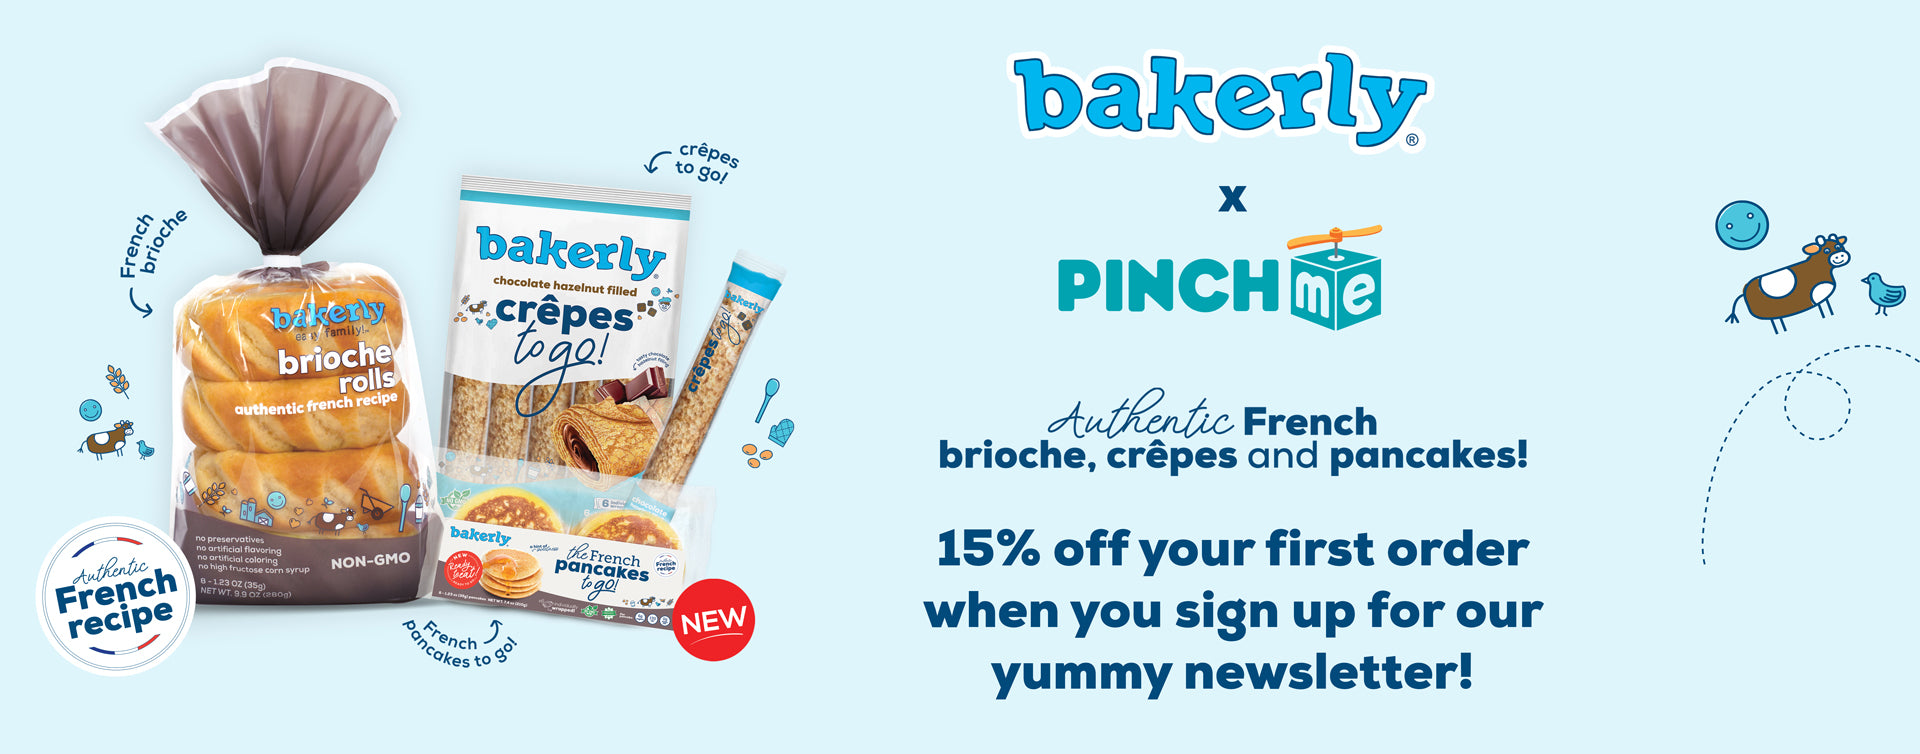 Bakerly Pinch Me Banner